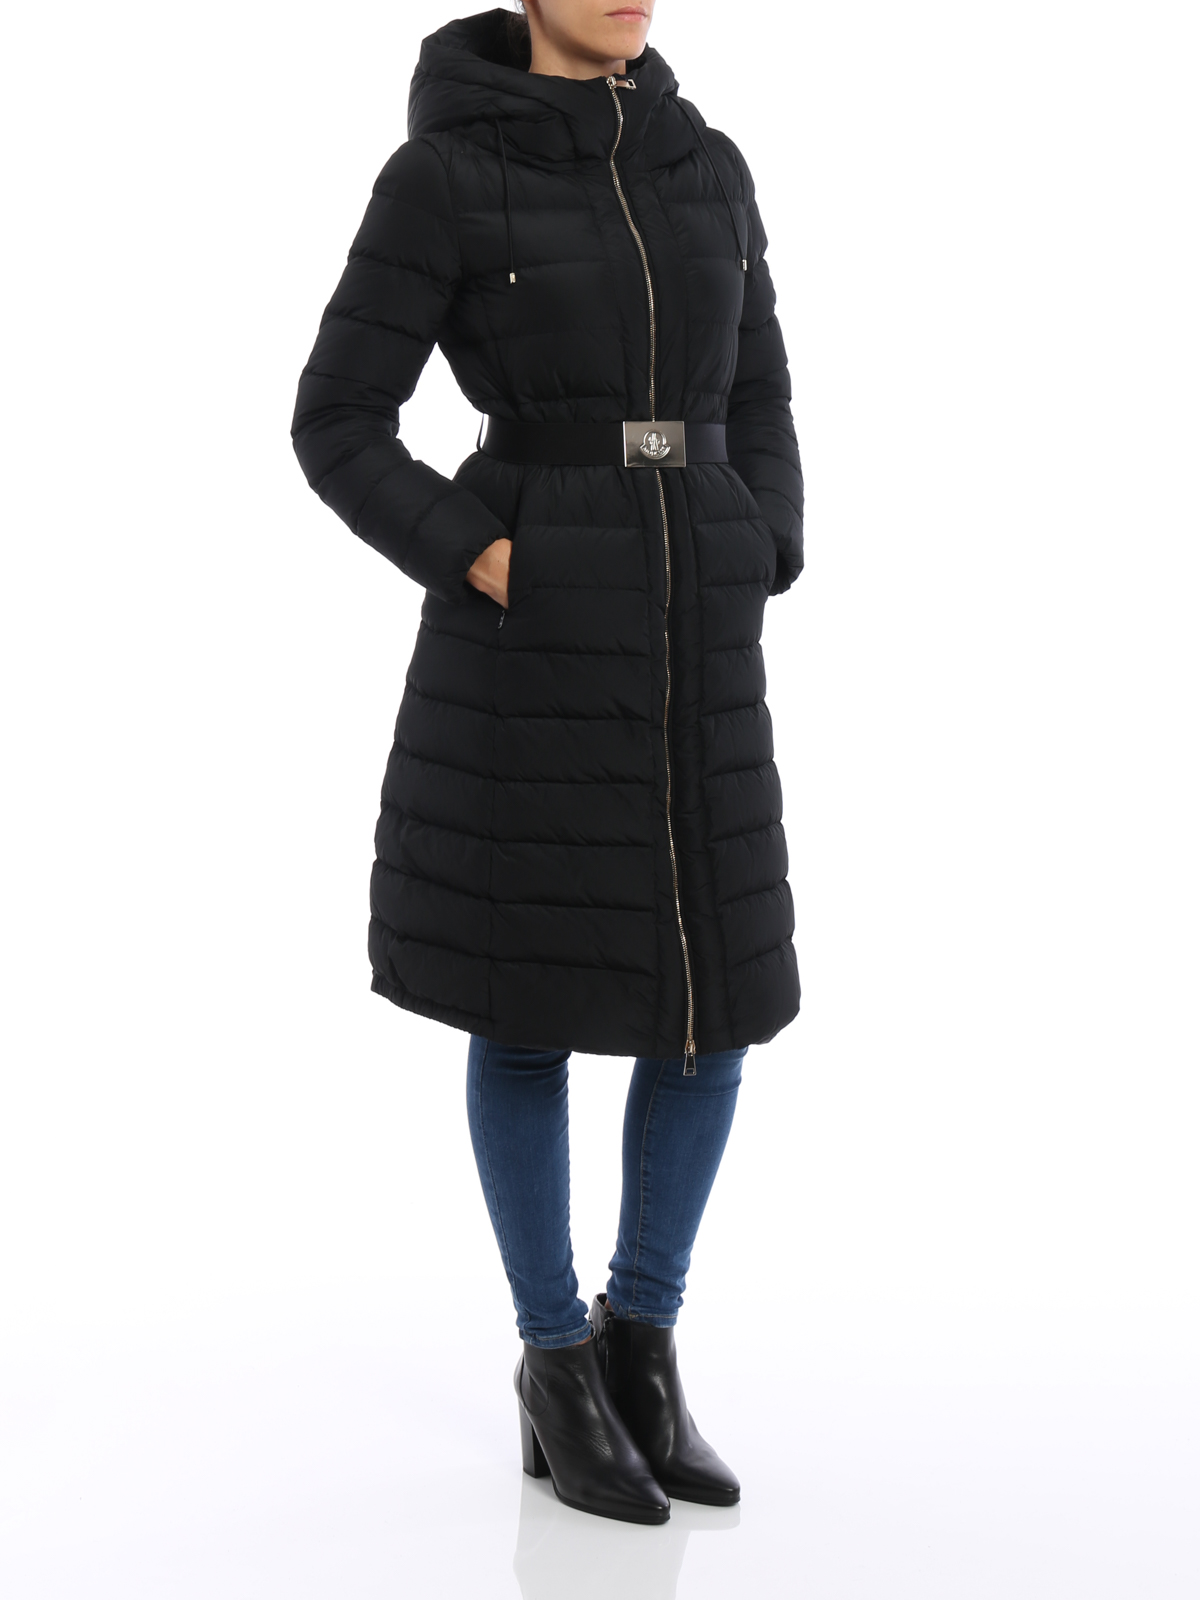 fae9c0a3b Moncler - Imin hooded belted long coat - padded coats - C2 093 ...